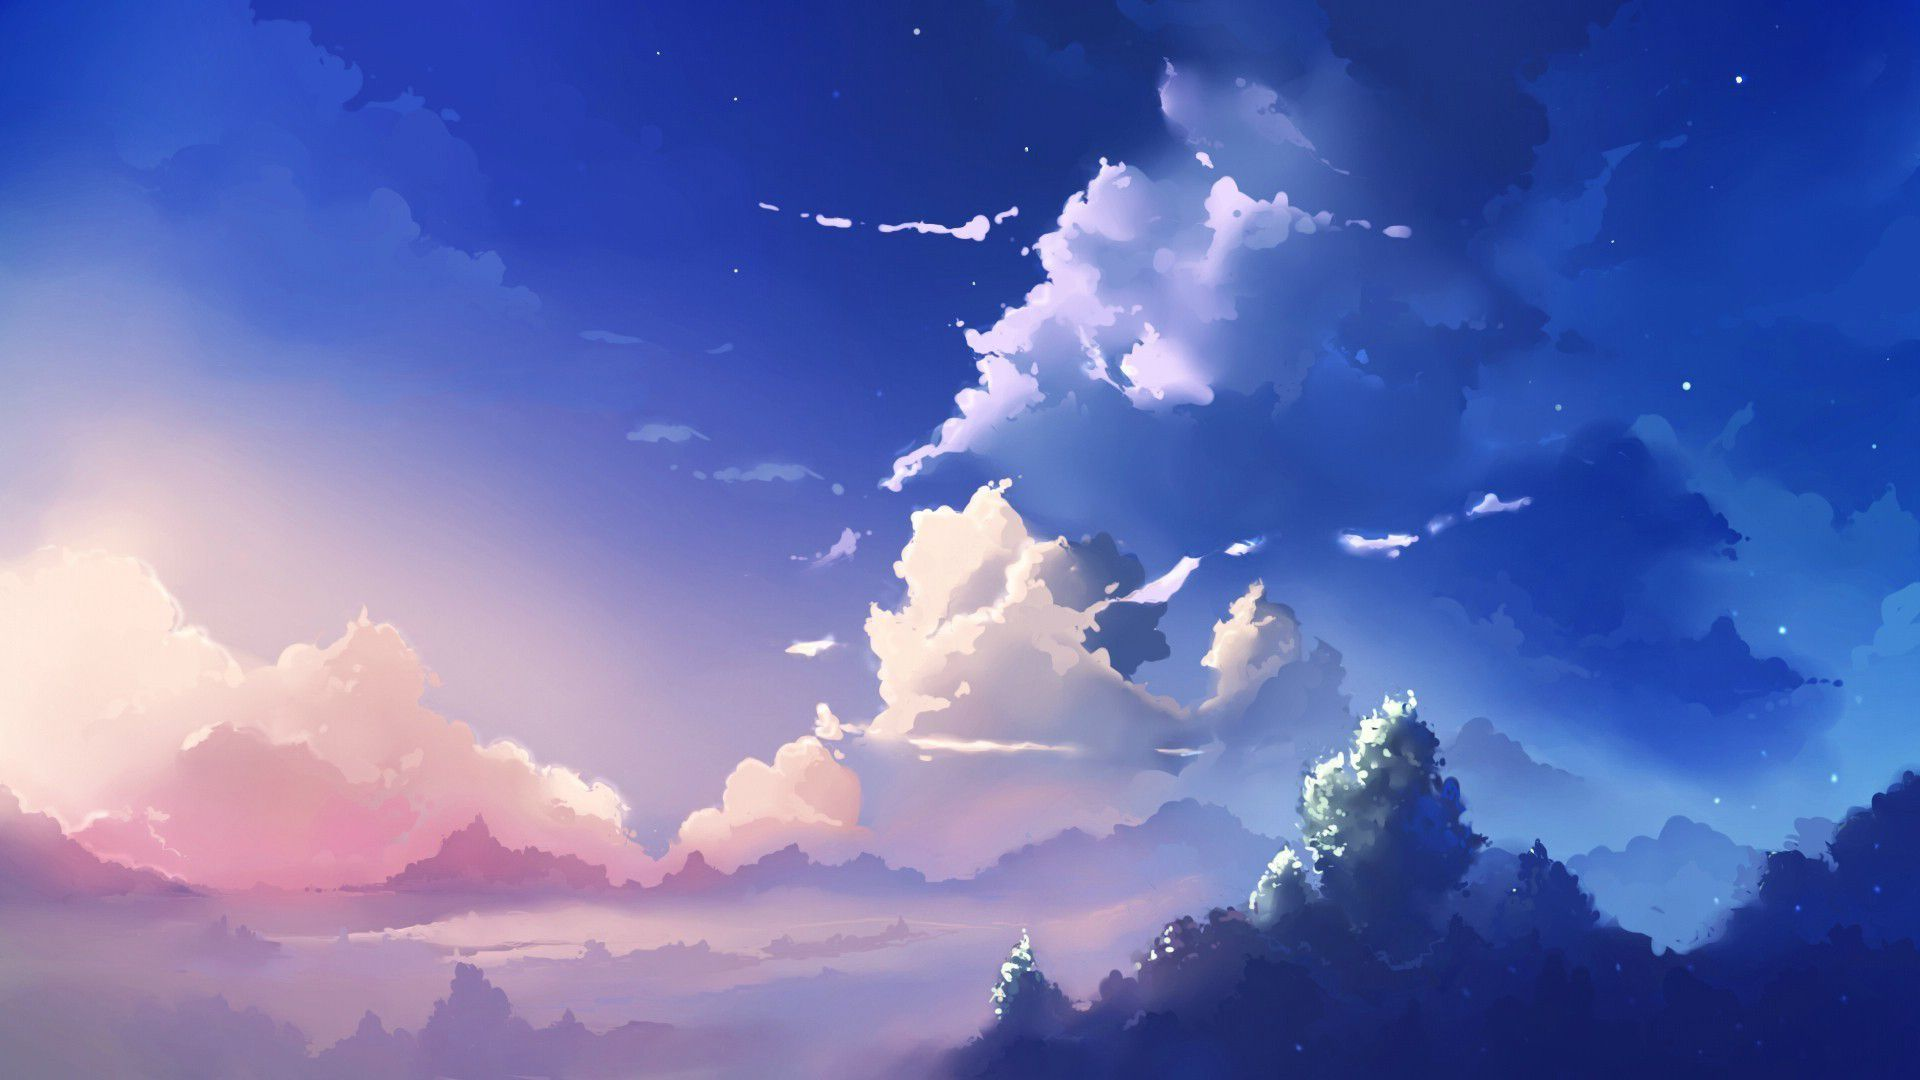 Sky Wallpapers Hd Awan Pemandangan Pemandangan Anime